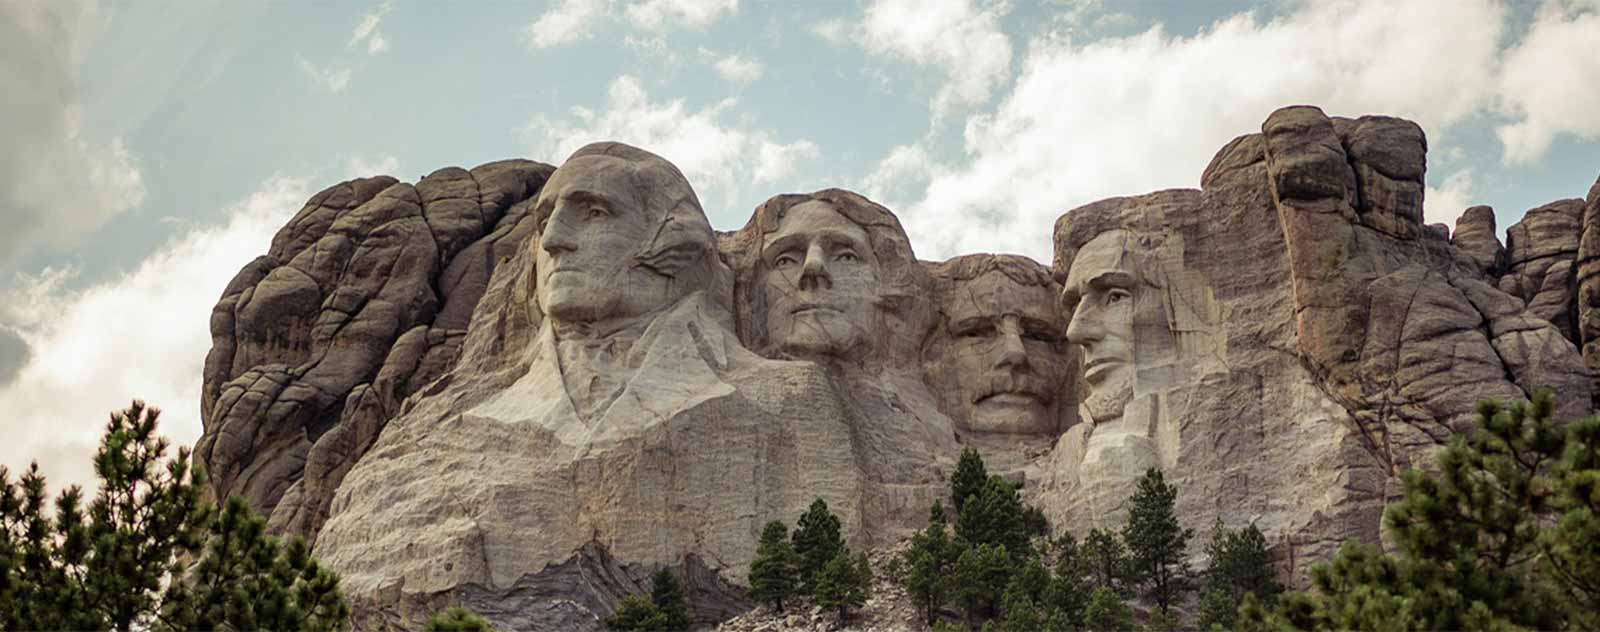 sculpture presidents mont rushmore